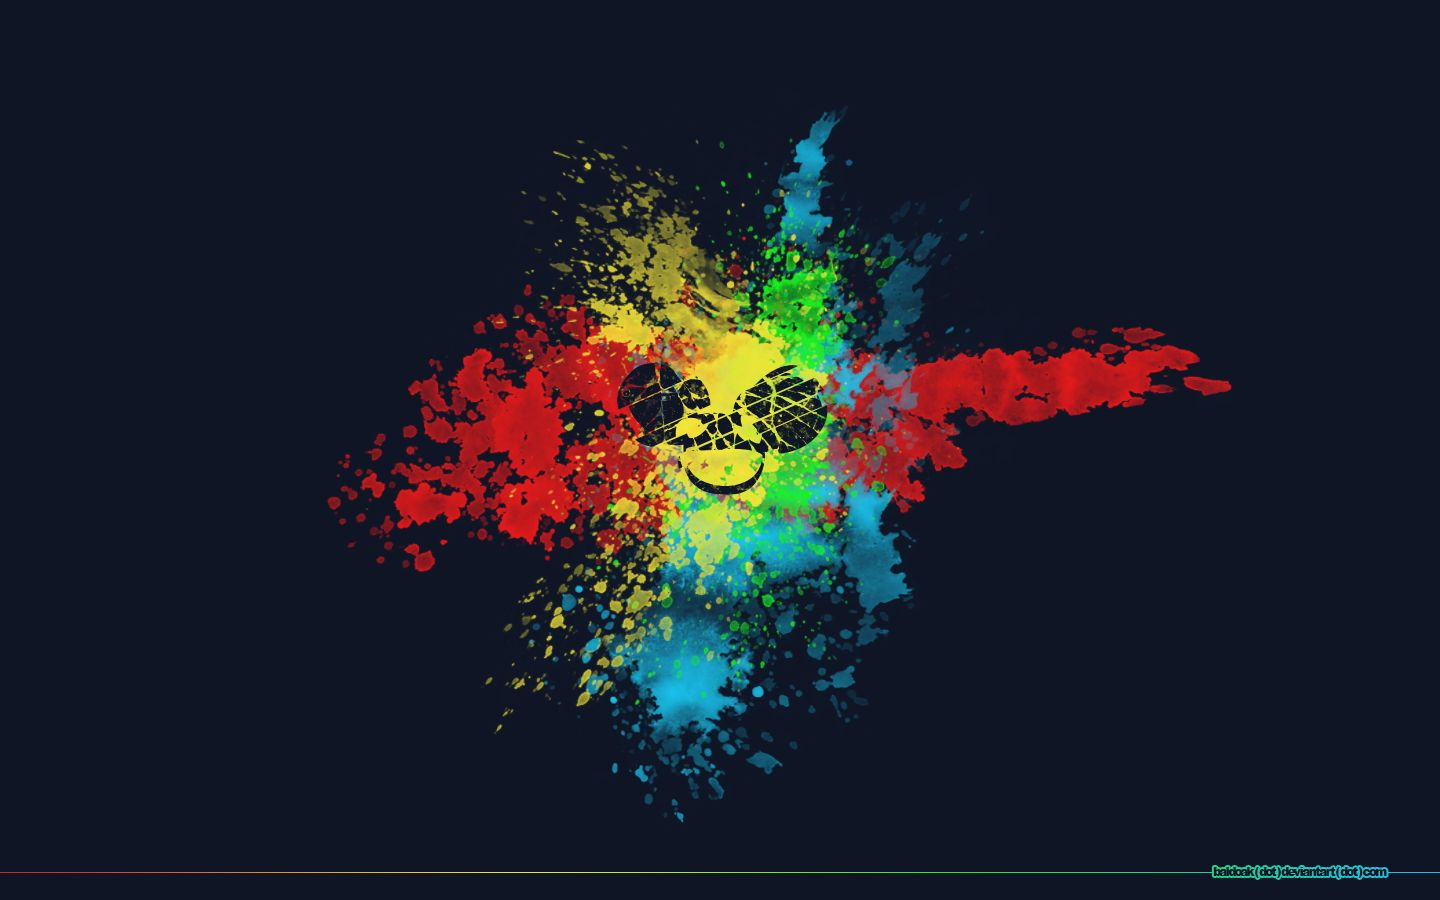 1440x900 Deadmau5 images splatter Deadmau5 HD wallpaper and background photos ...